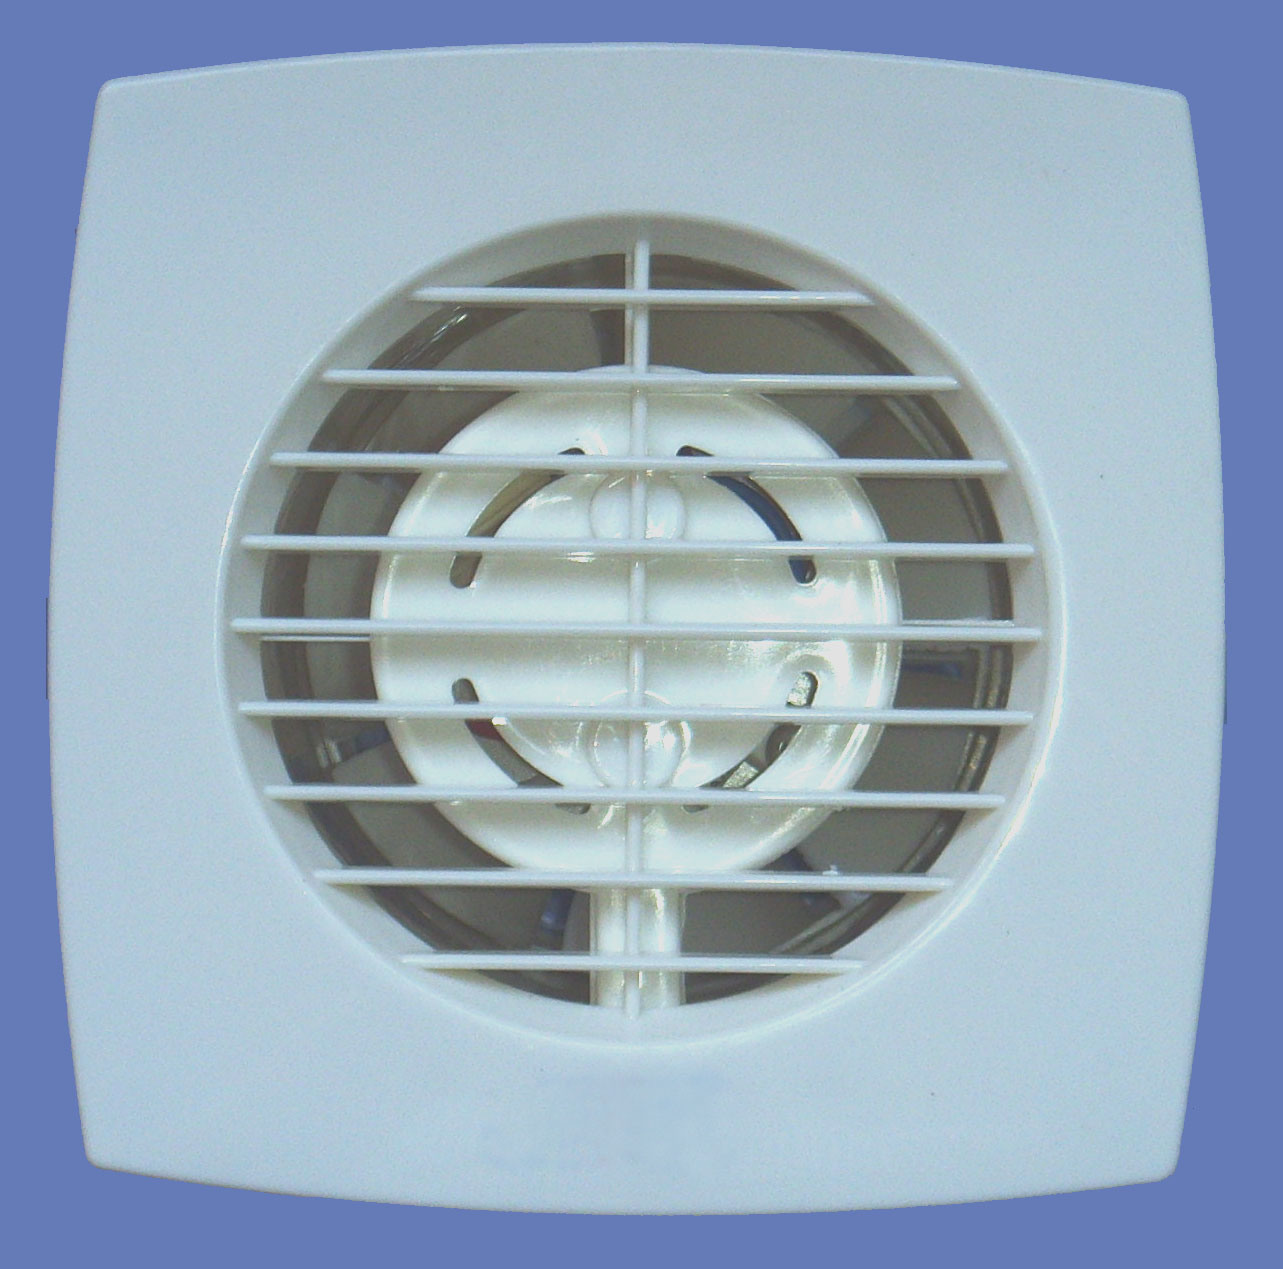 Bathroom Exhaust Fans : For a bathroom exhaust fan bath fans